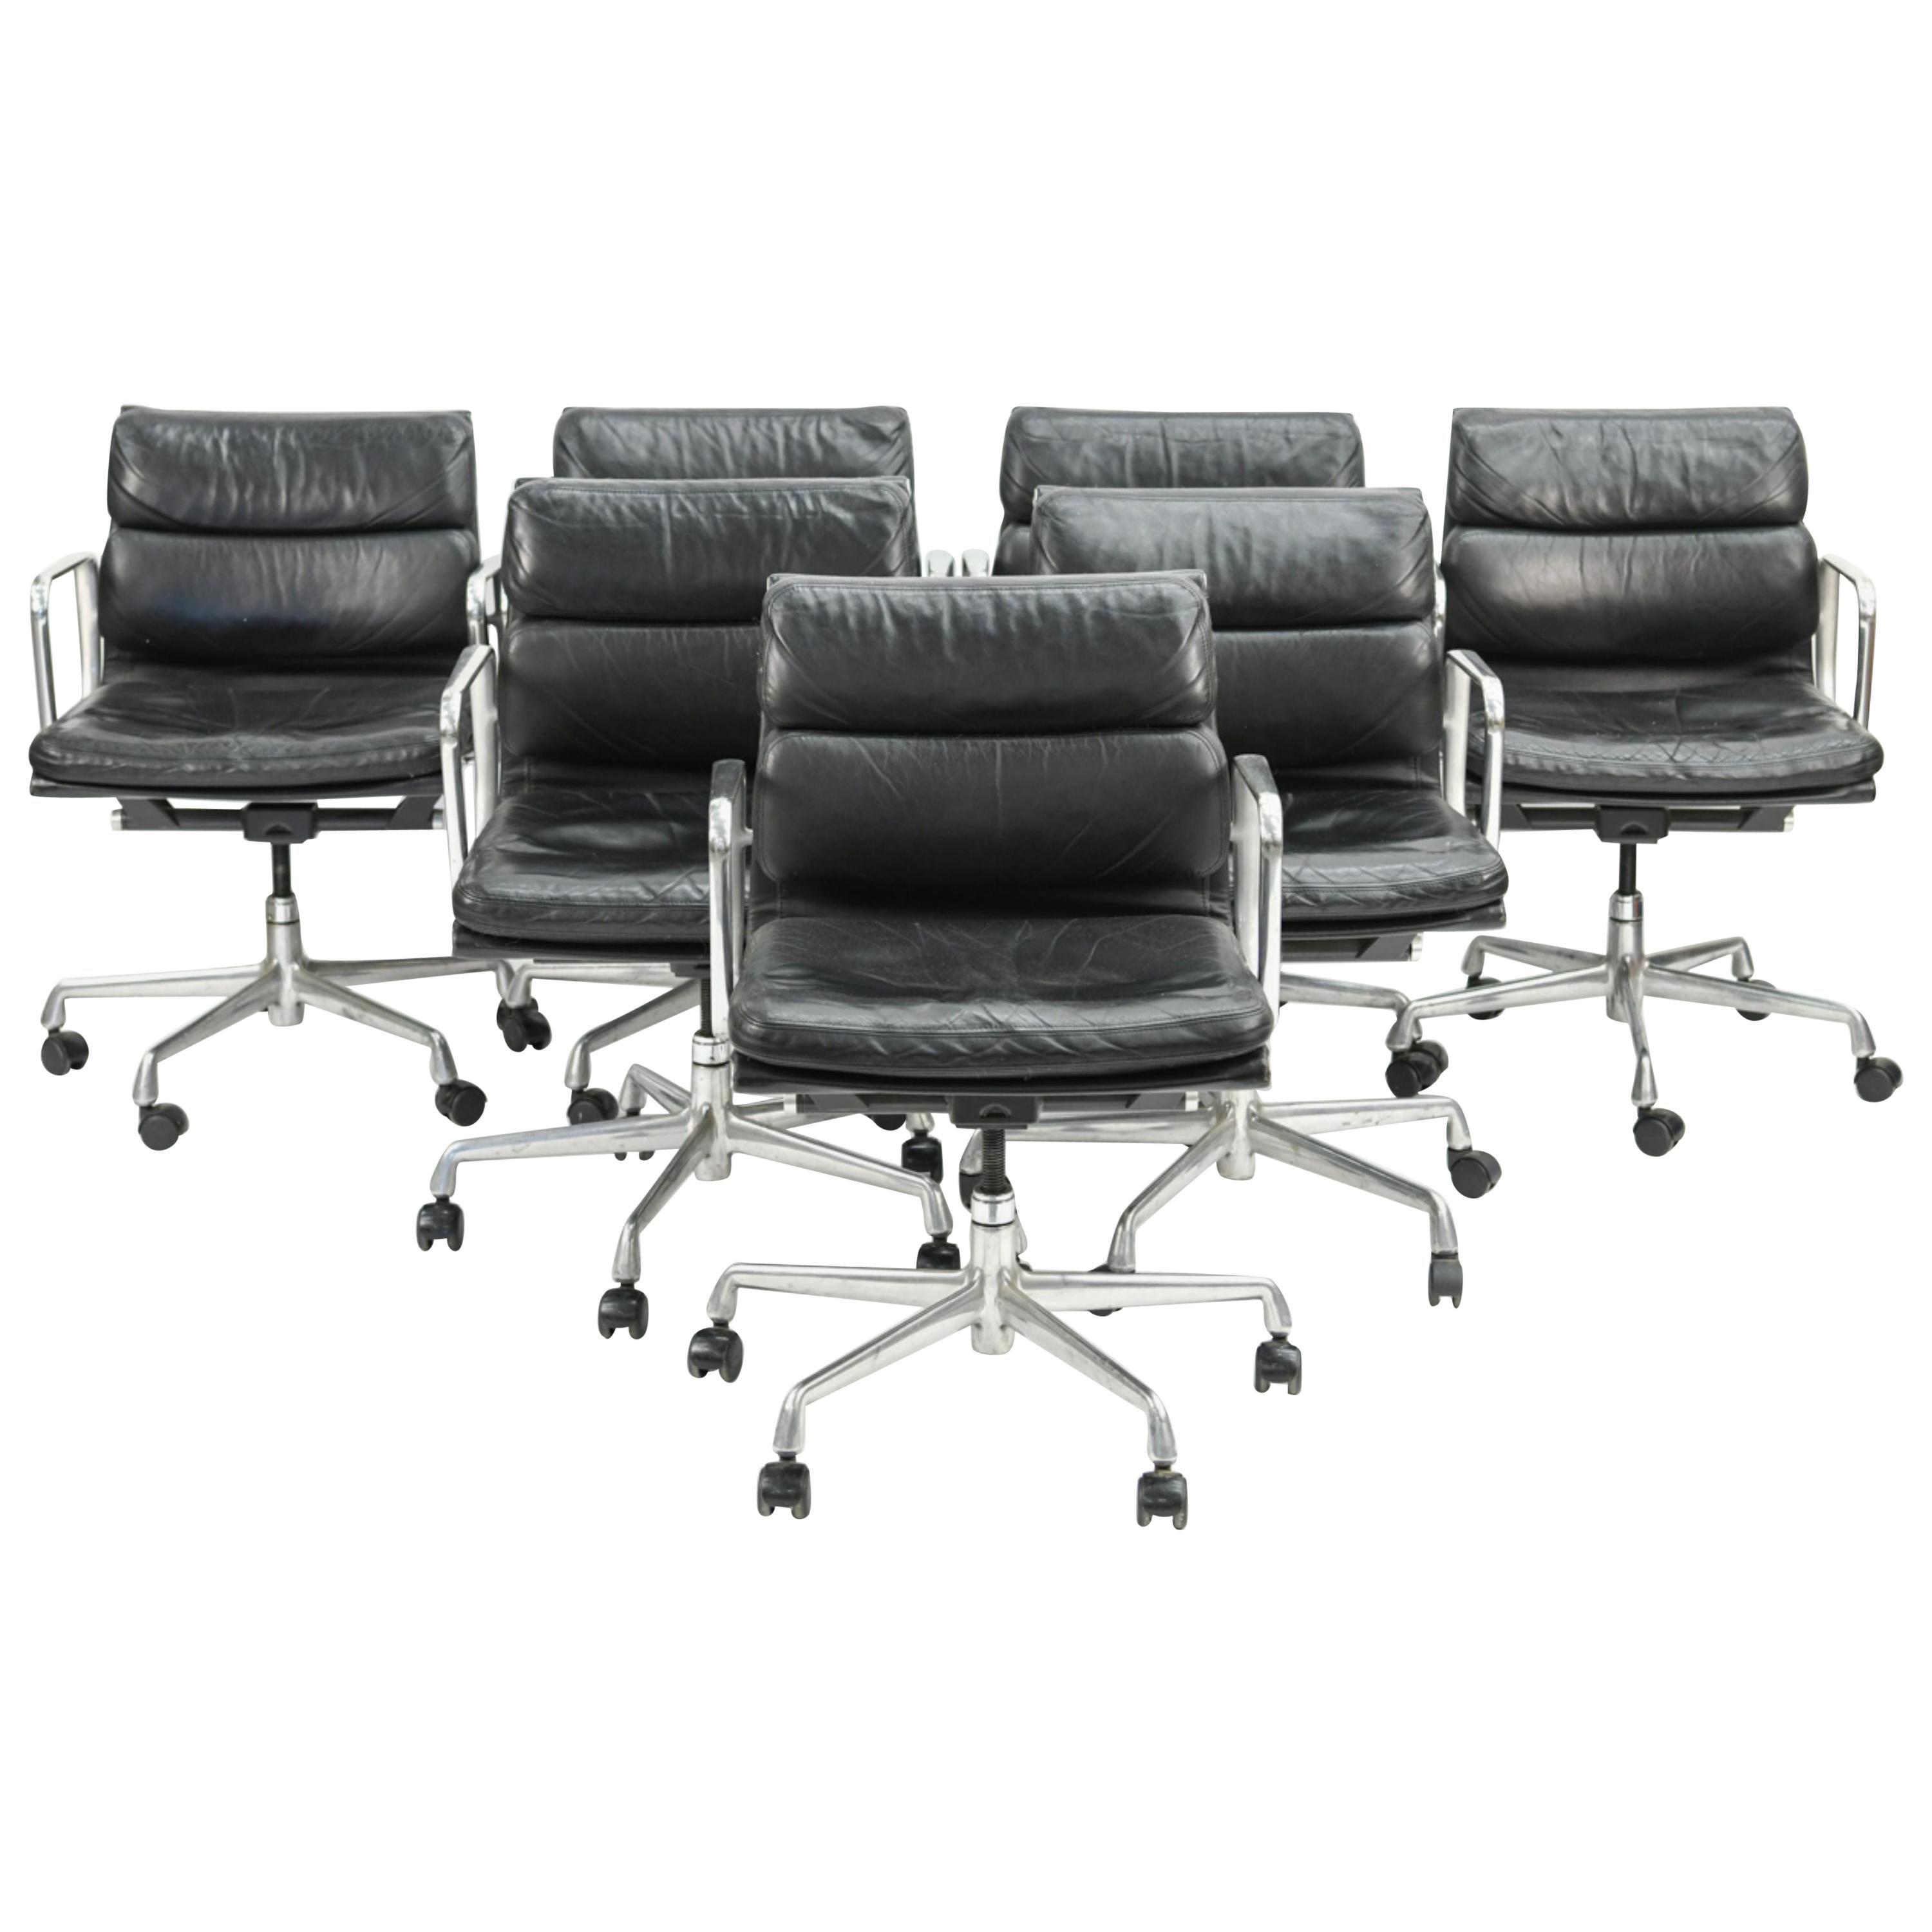 Six Herman Miller Soft Pad Office Chairs